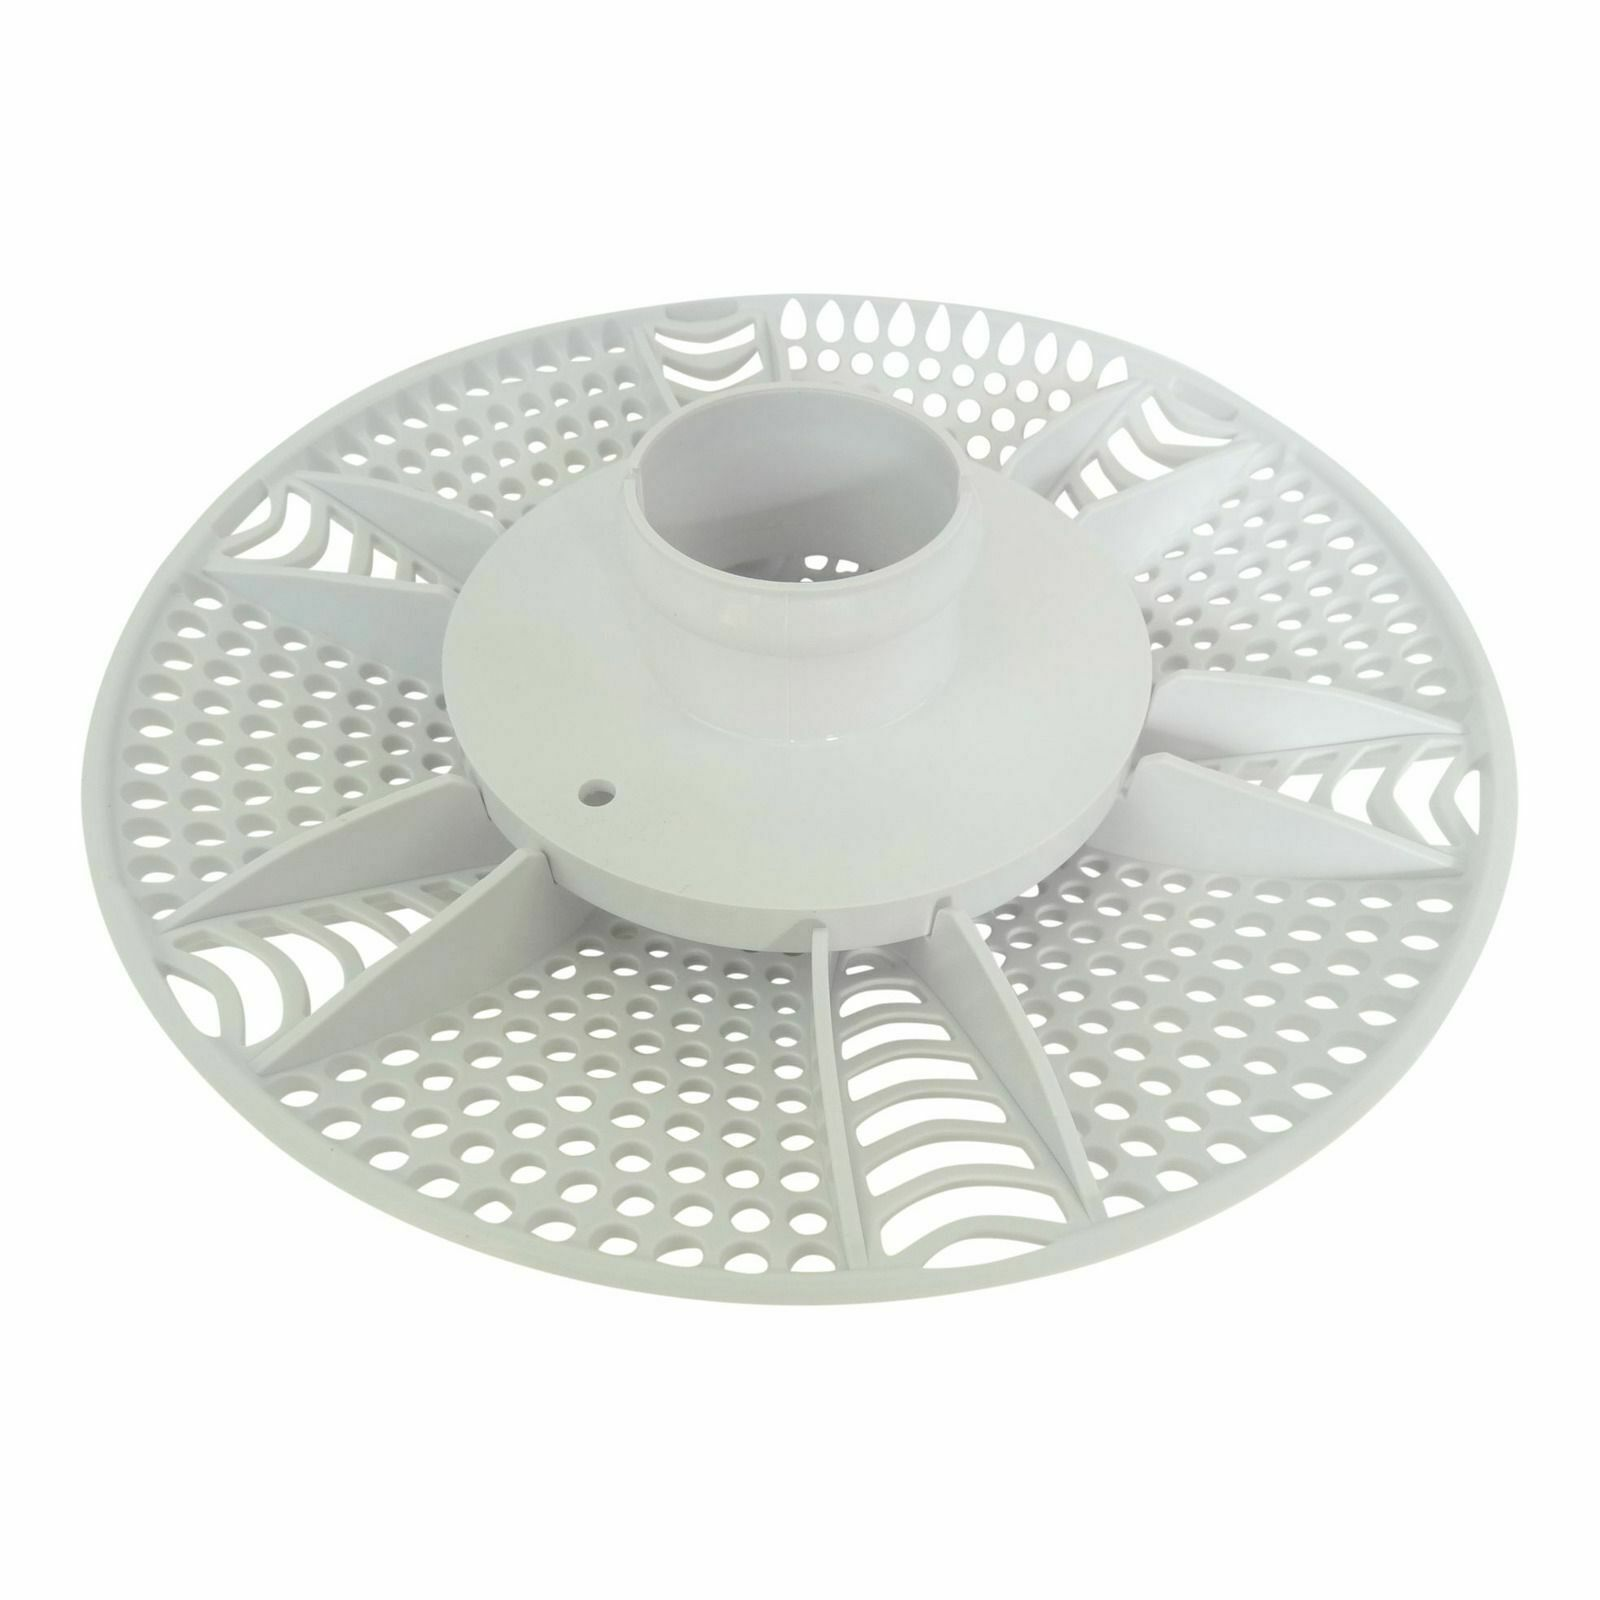 Spa Electrics Pool & Spa Safety Pro Suction Cover SE9 40mm Pipe Slip Fit White